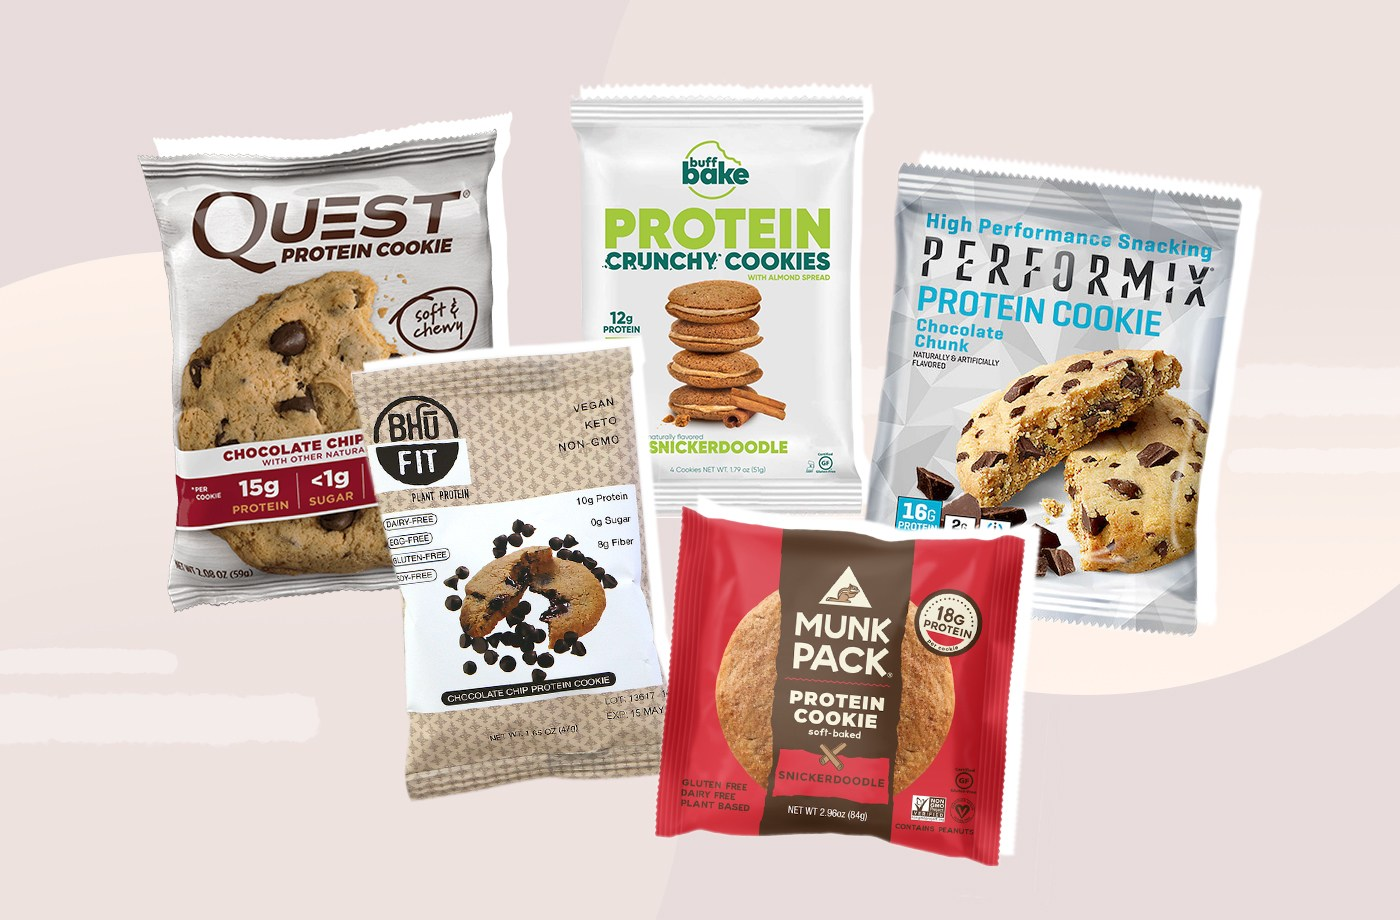 Thumbnail for A Dietitian's Definitive Ranking of the 10 Most Popular Protein Cookies